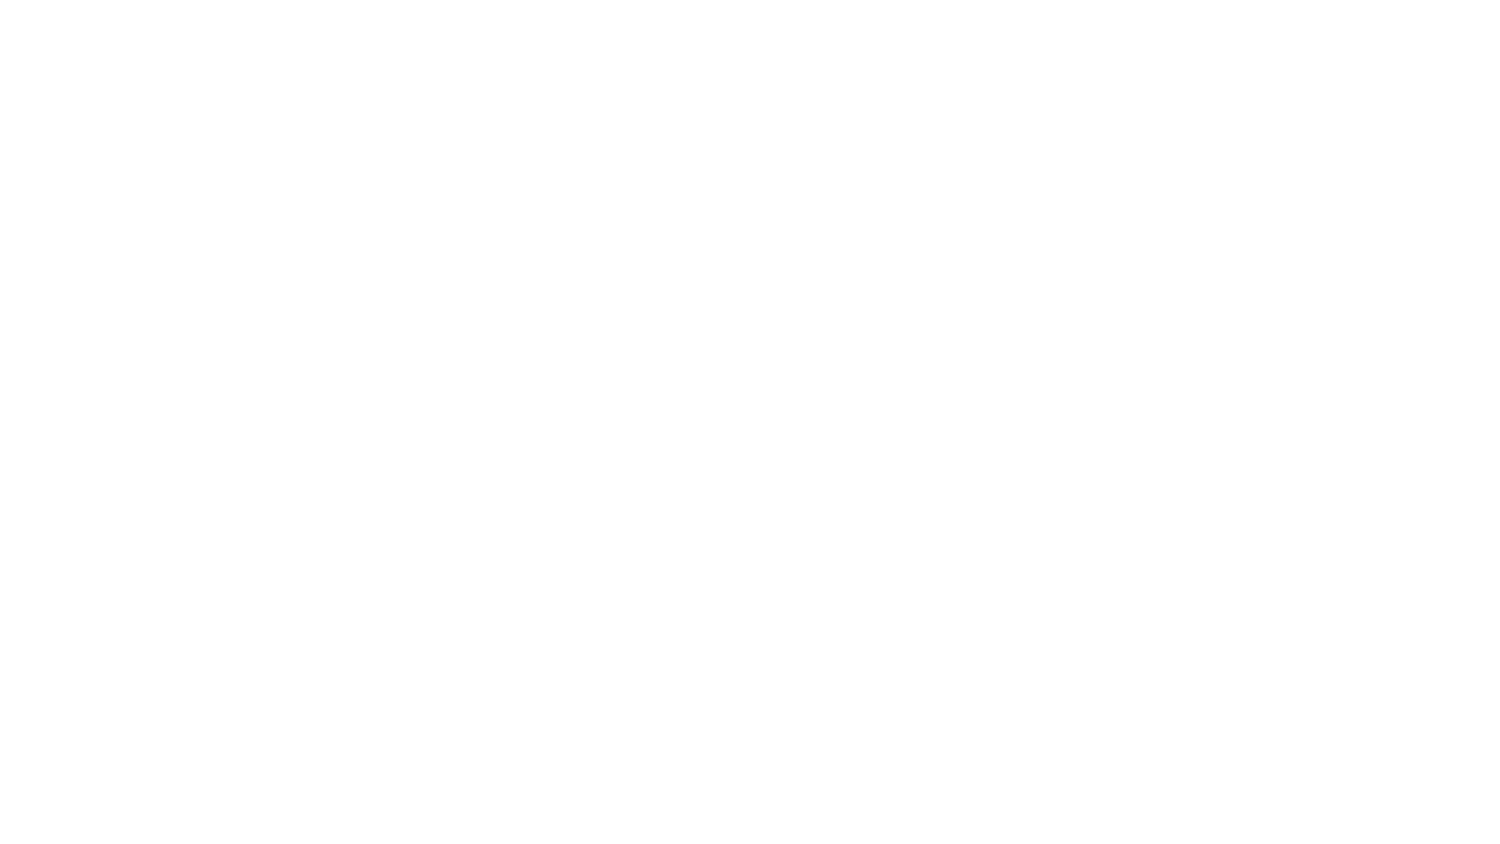 Scott Cassie Films